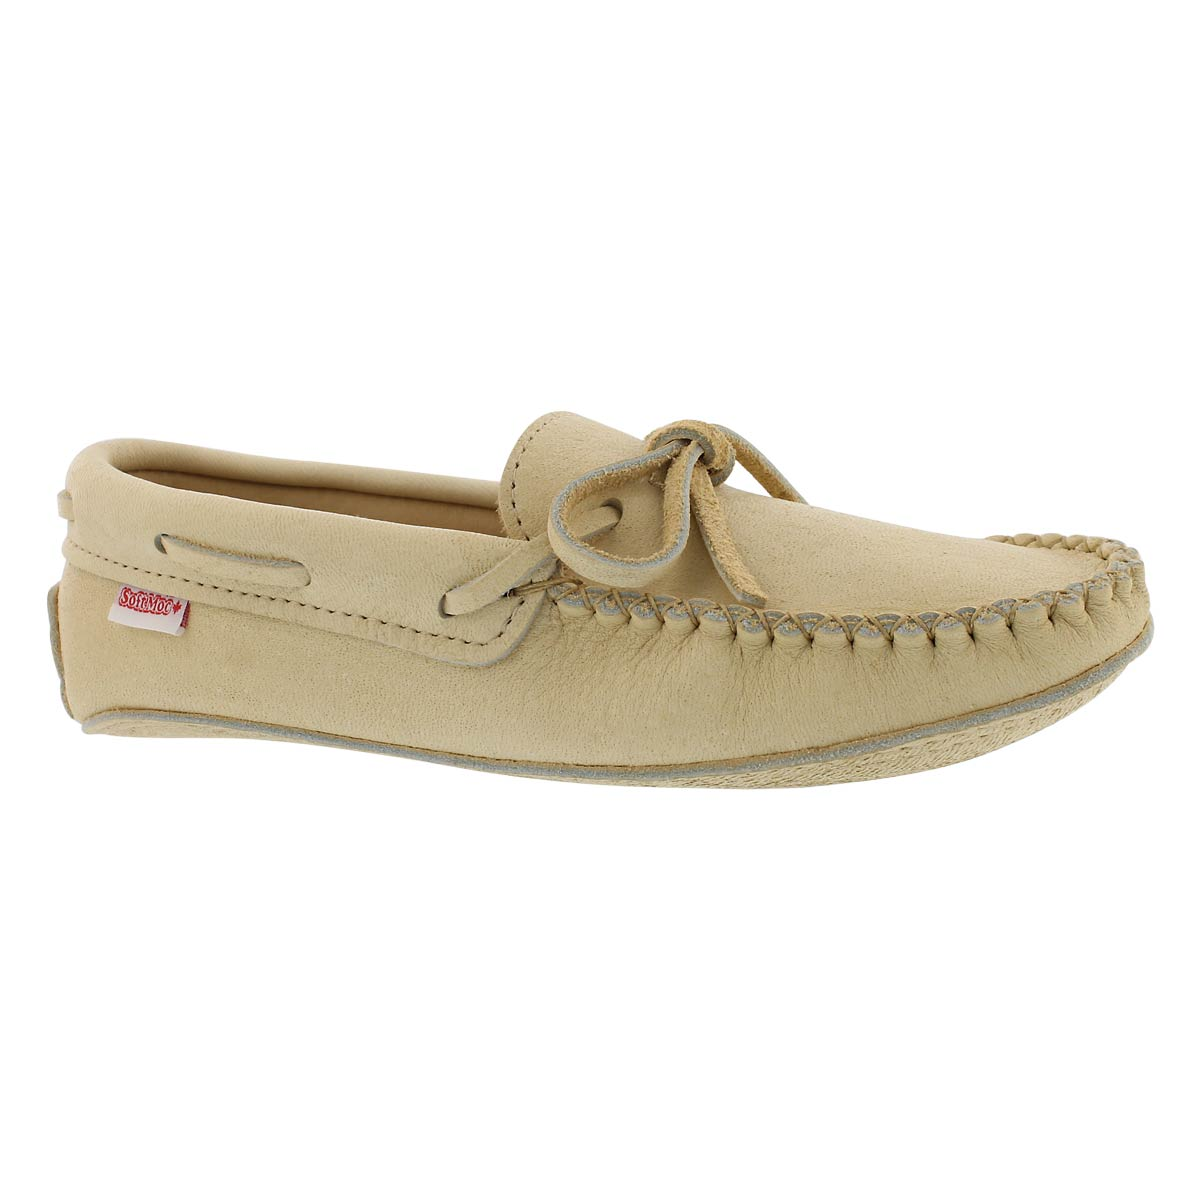 Men's natural caribou double sole moccasins